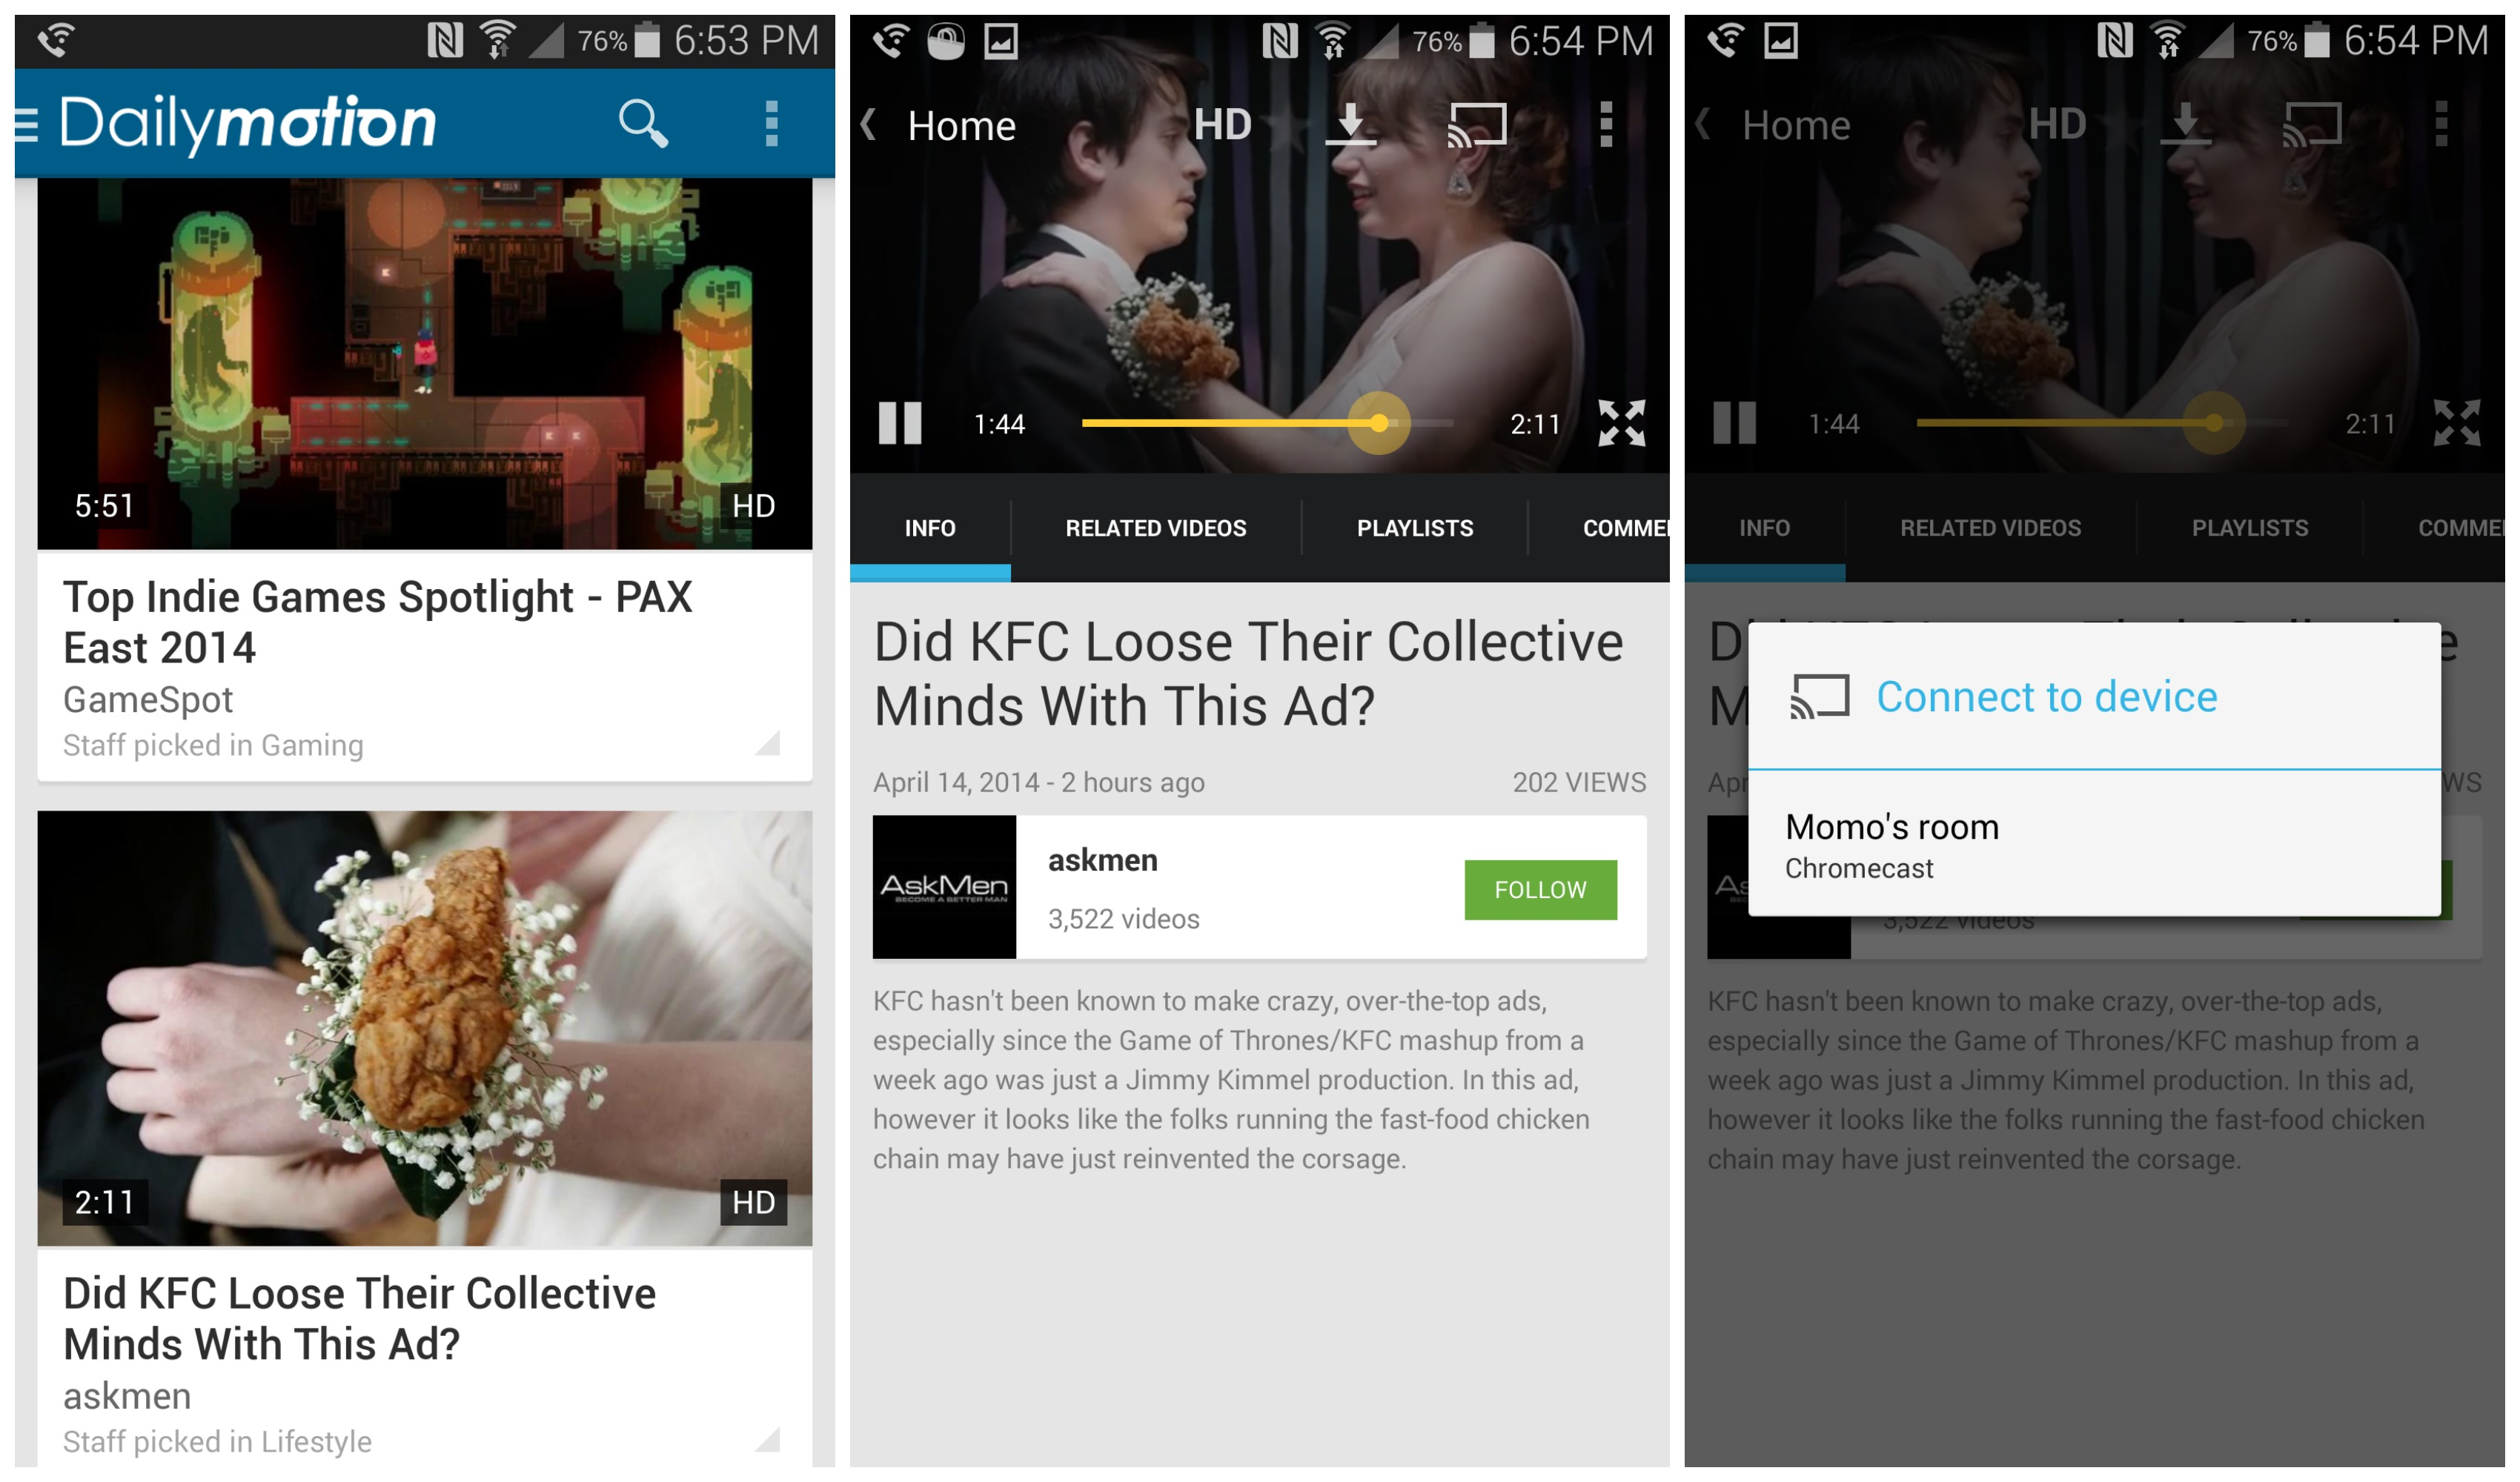 Dailymotion app for Android now supports Chromecast Dailymotion